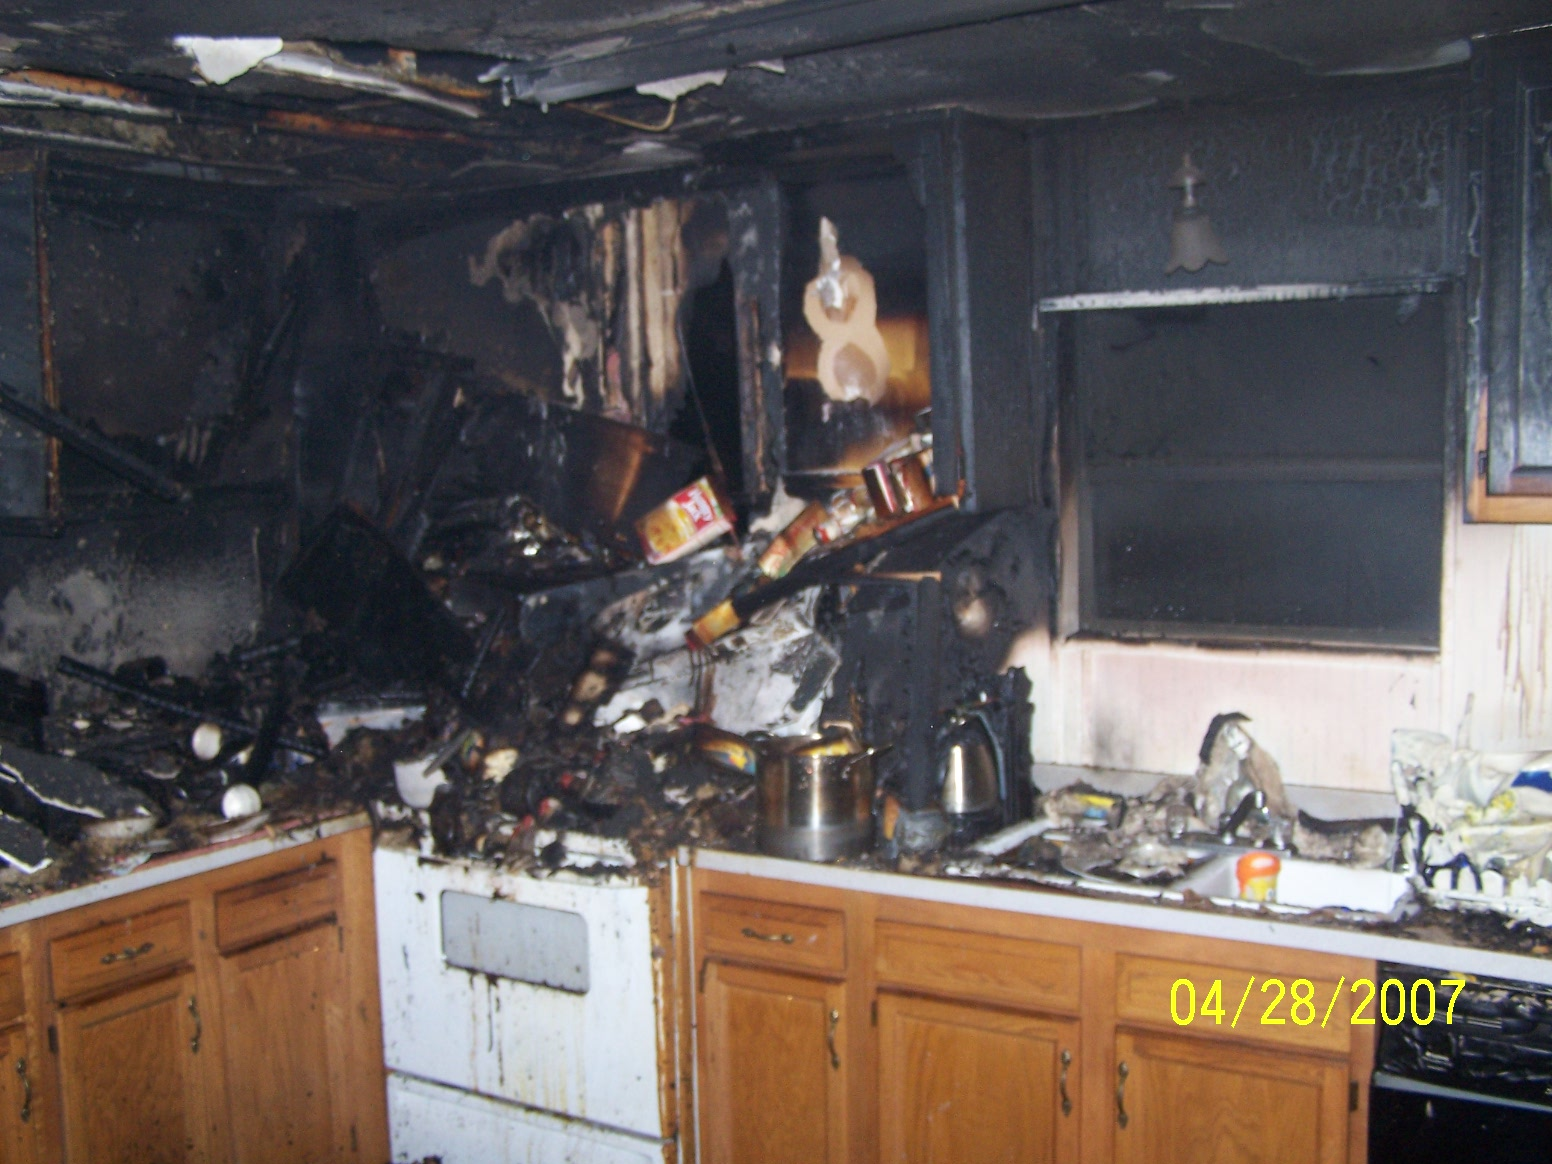 Kitchen Fire Tactics, What are the challenges?